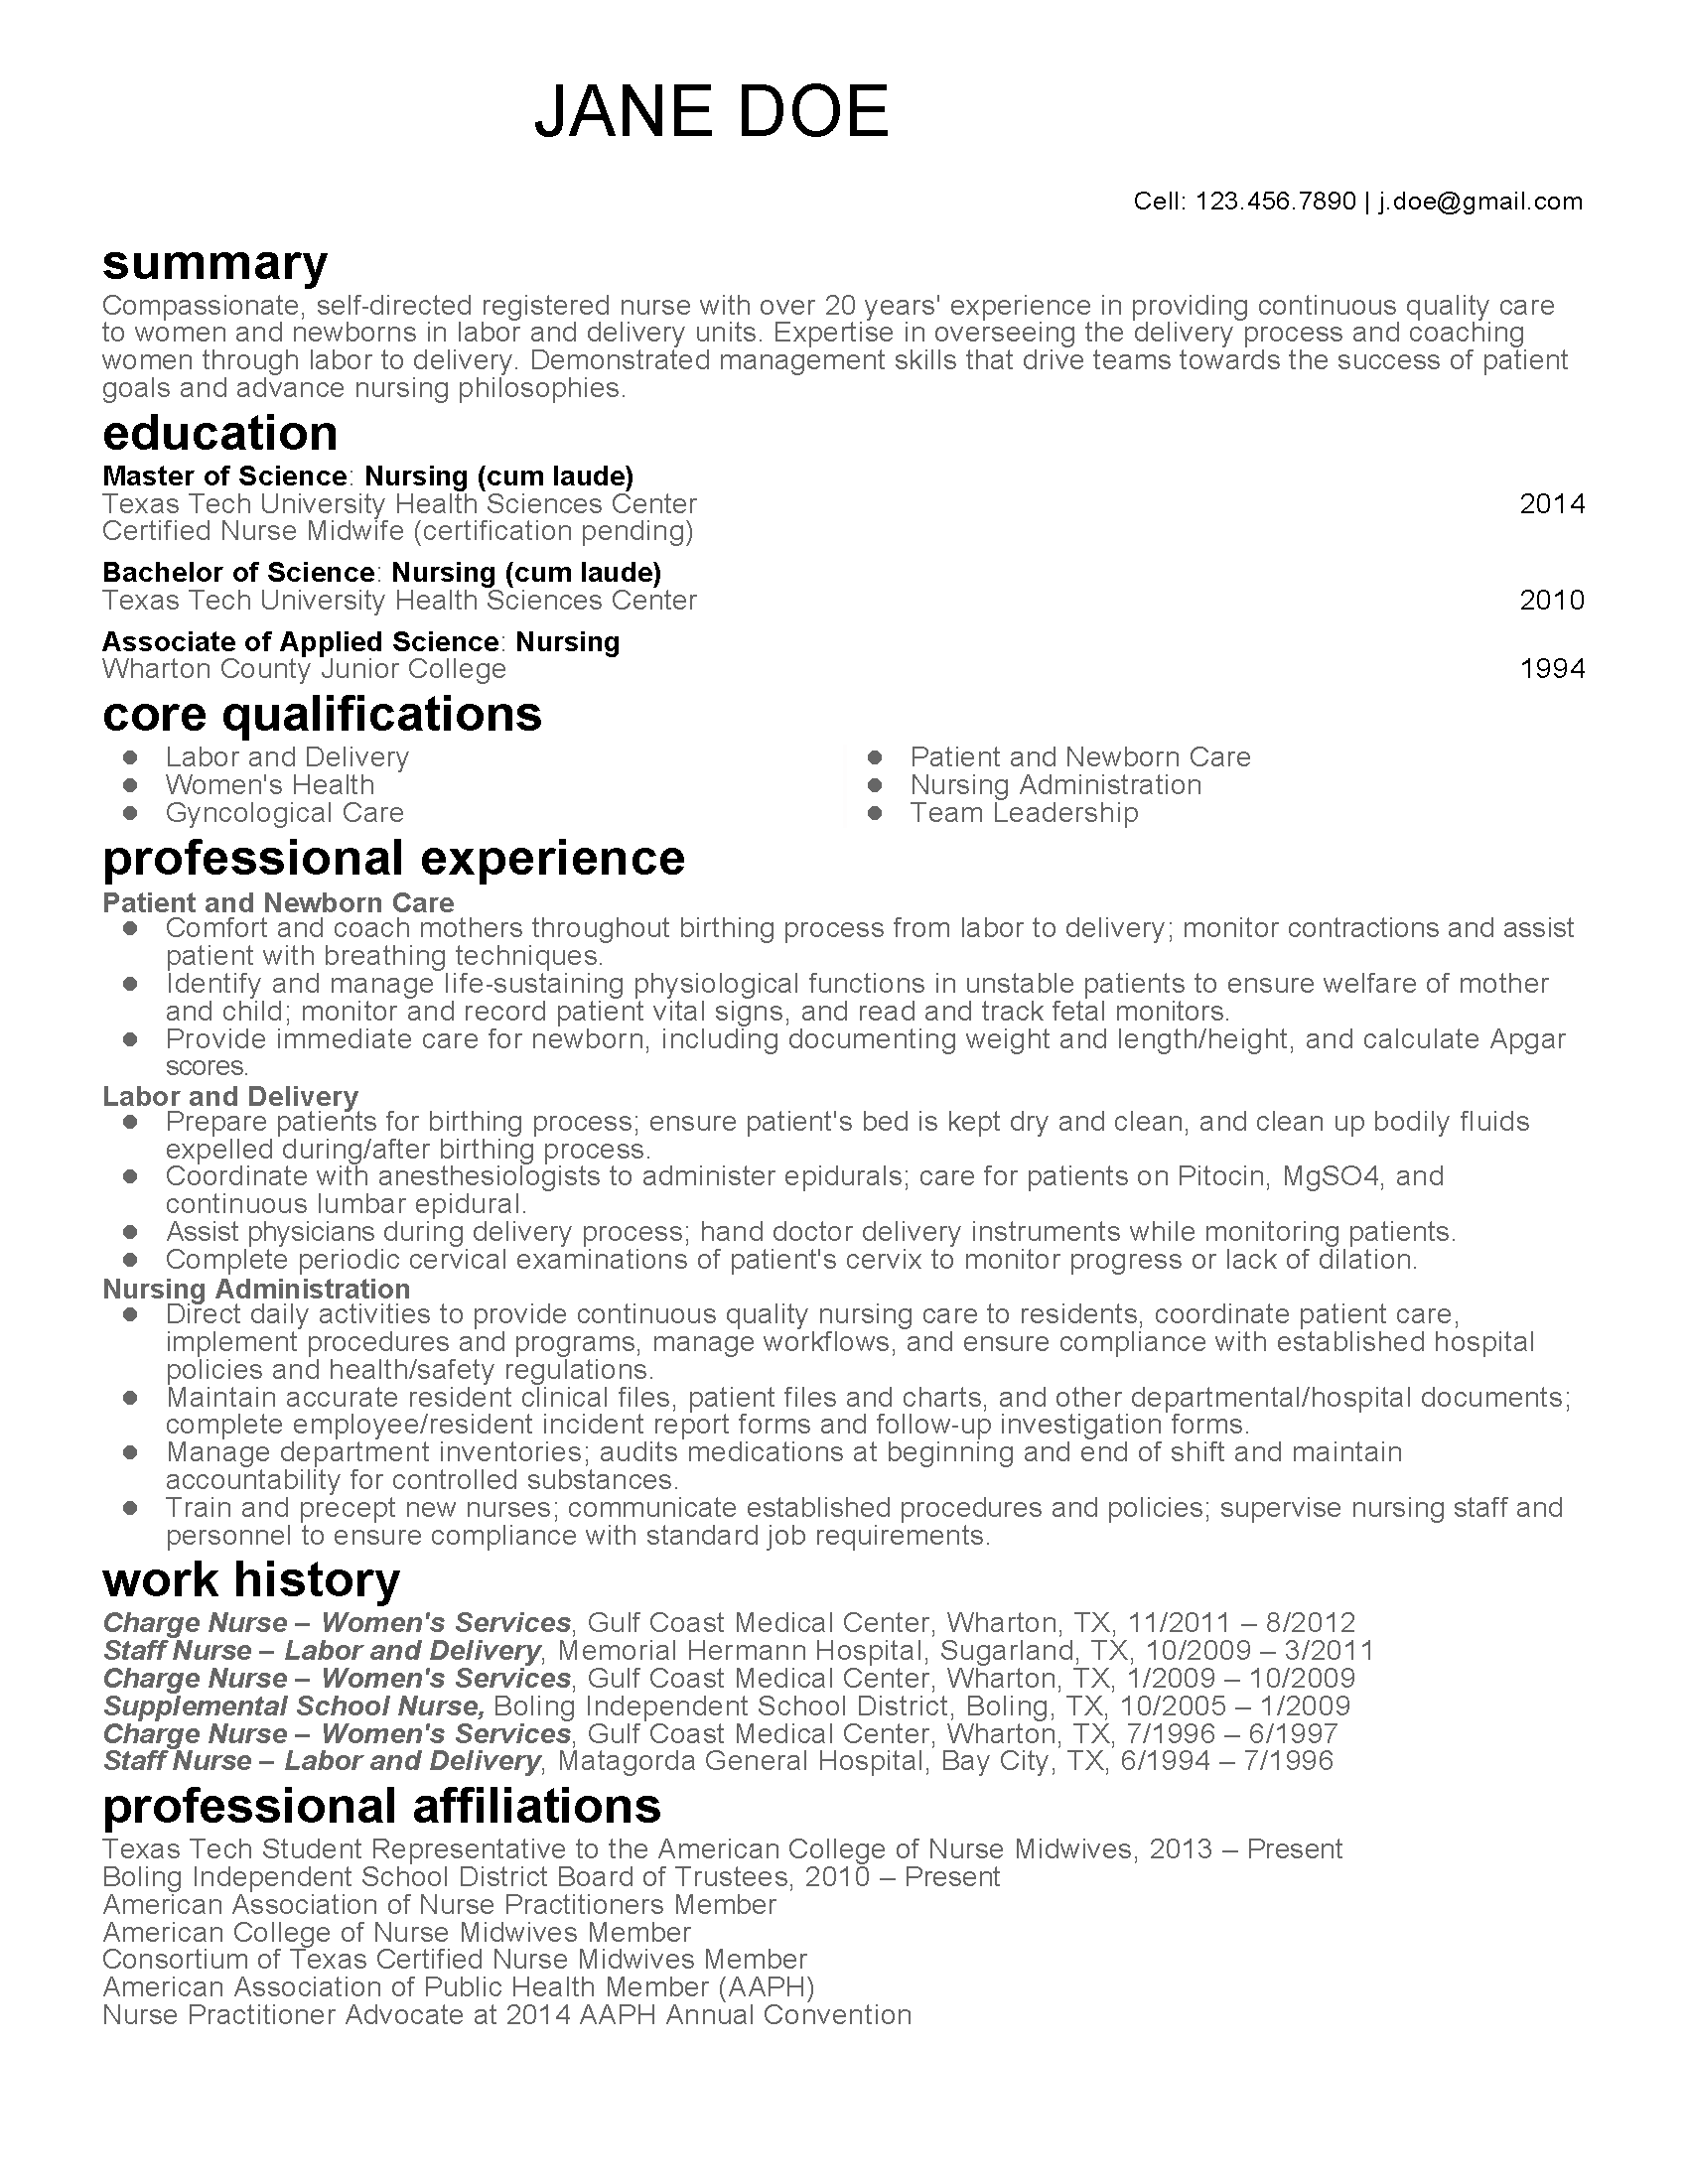 Health Educator Resume Professional Midwife Templates To Showcase Your Talent